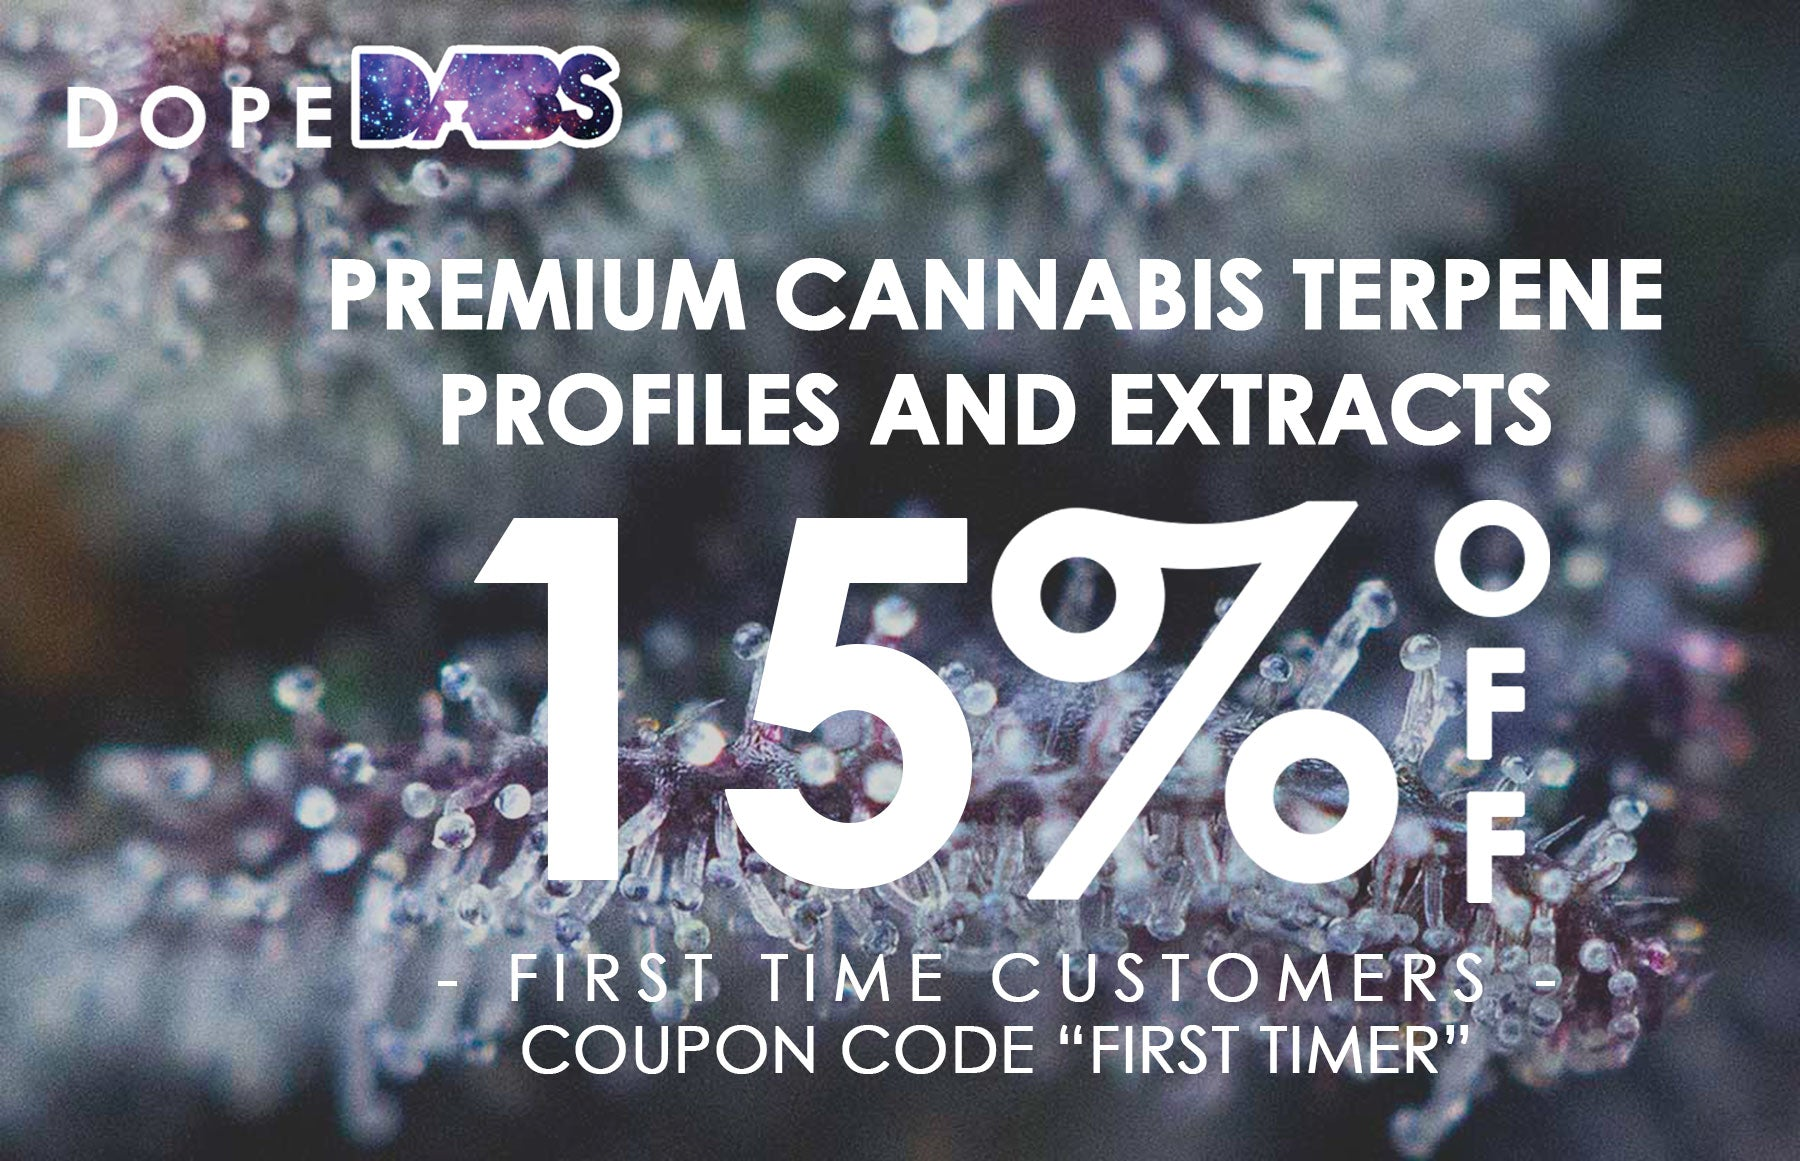 "Premium Cannabis Terpene Profiles and Extracts for Sale, First Time Customers Save 15% with code ""First Timer"""